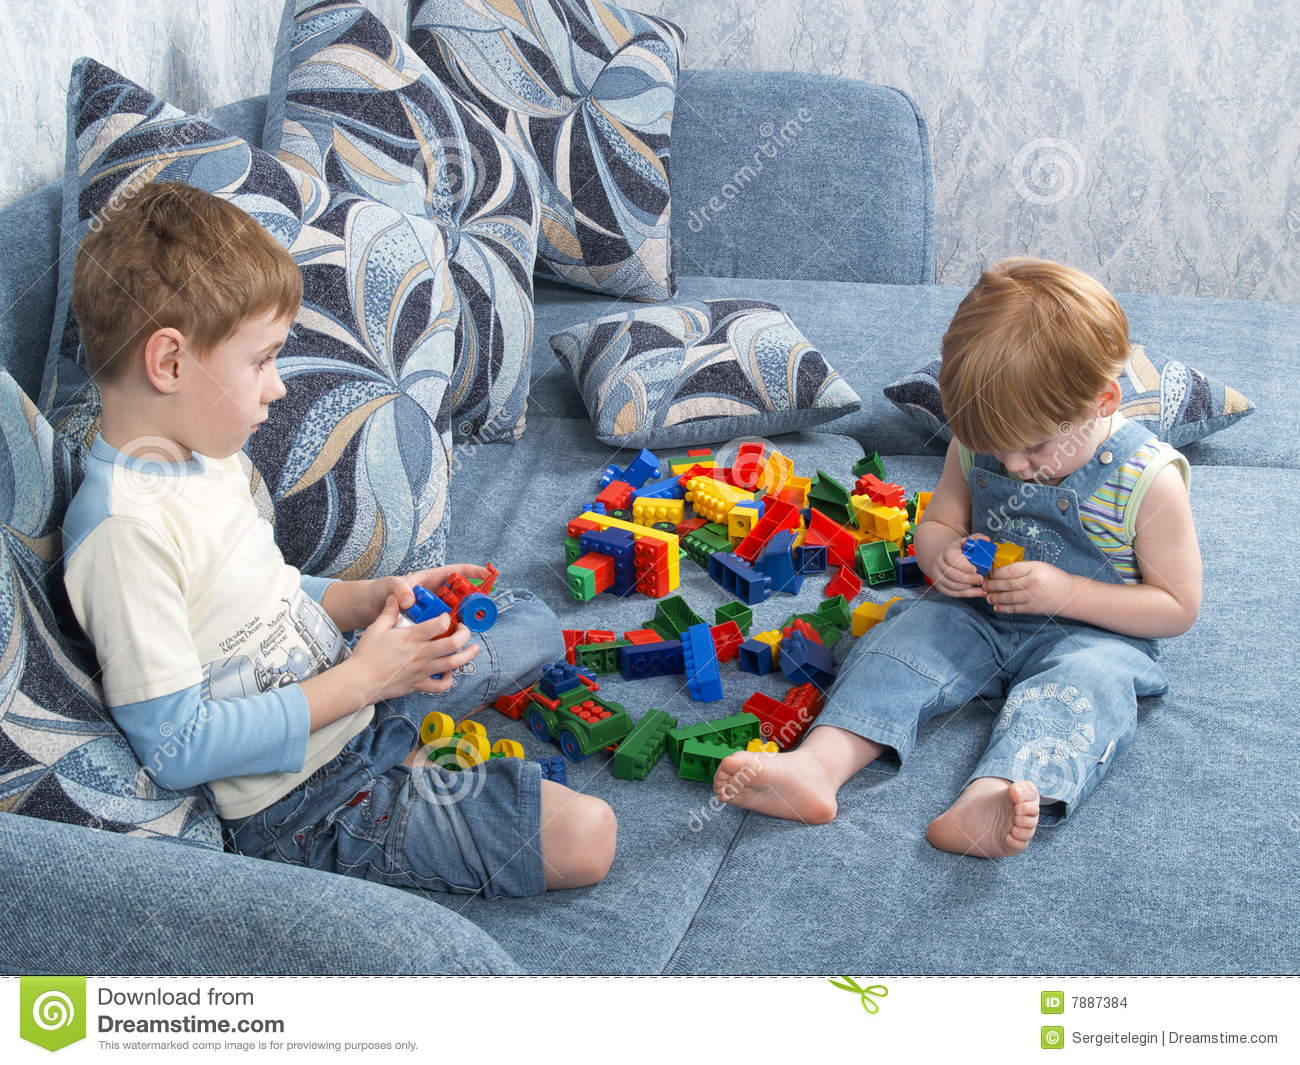 Play Toys For Boys : Two boys play toys stock photo image of background